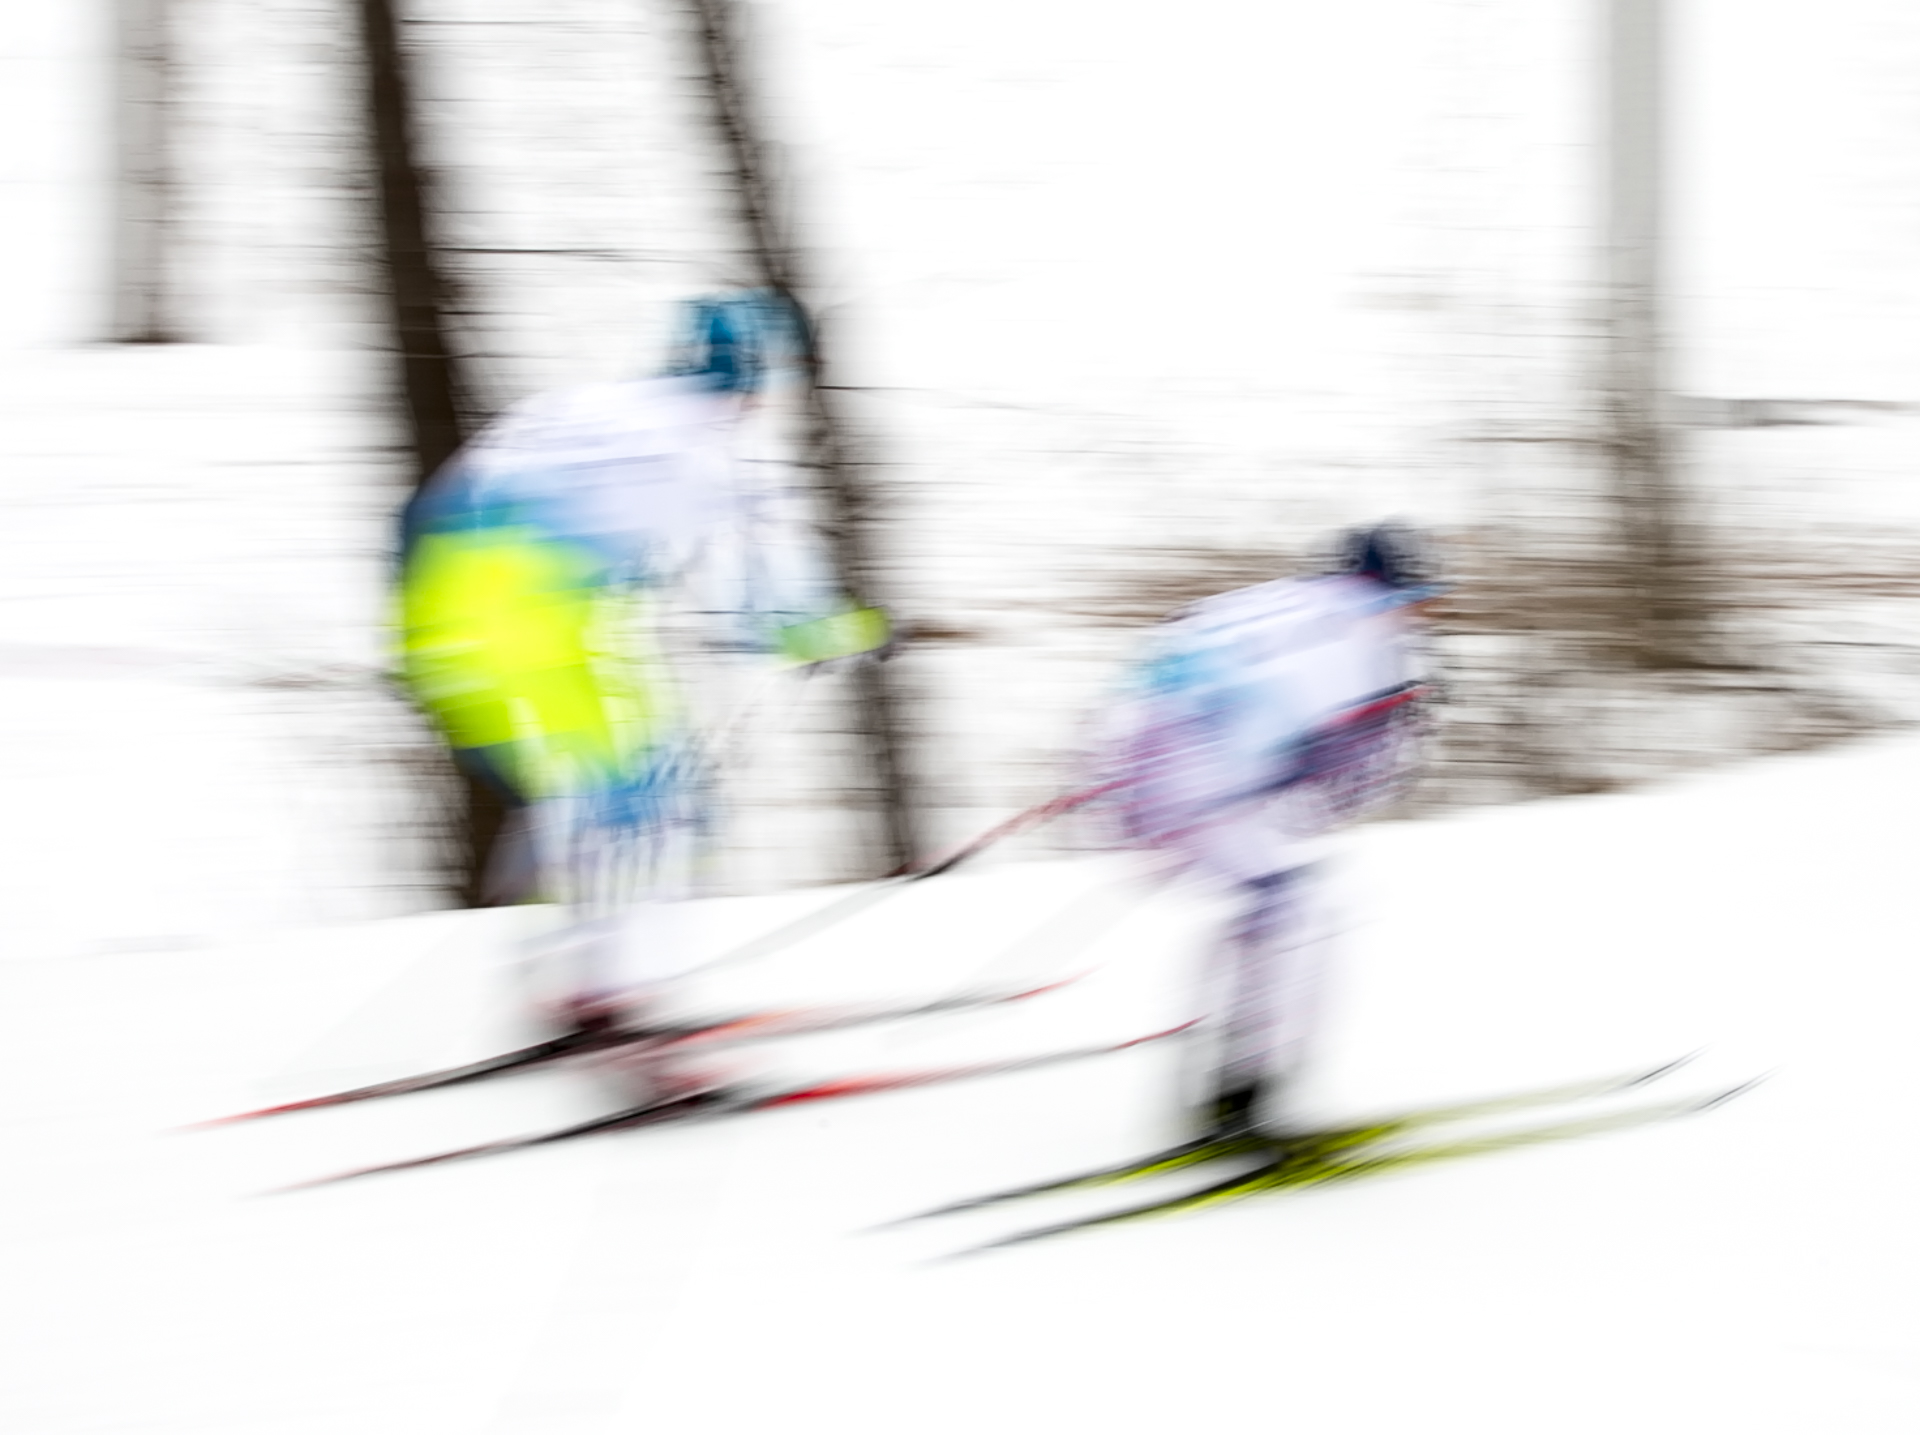 Winter Races - Digital (Winter) - Name Withheld Per Request